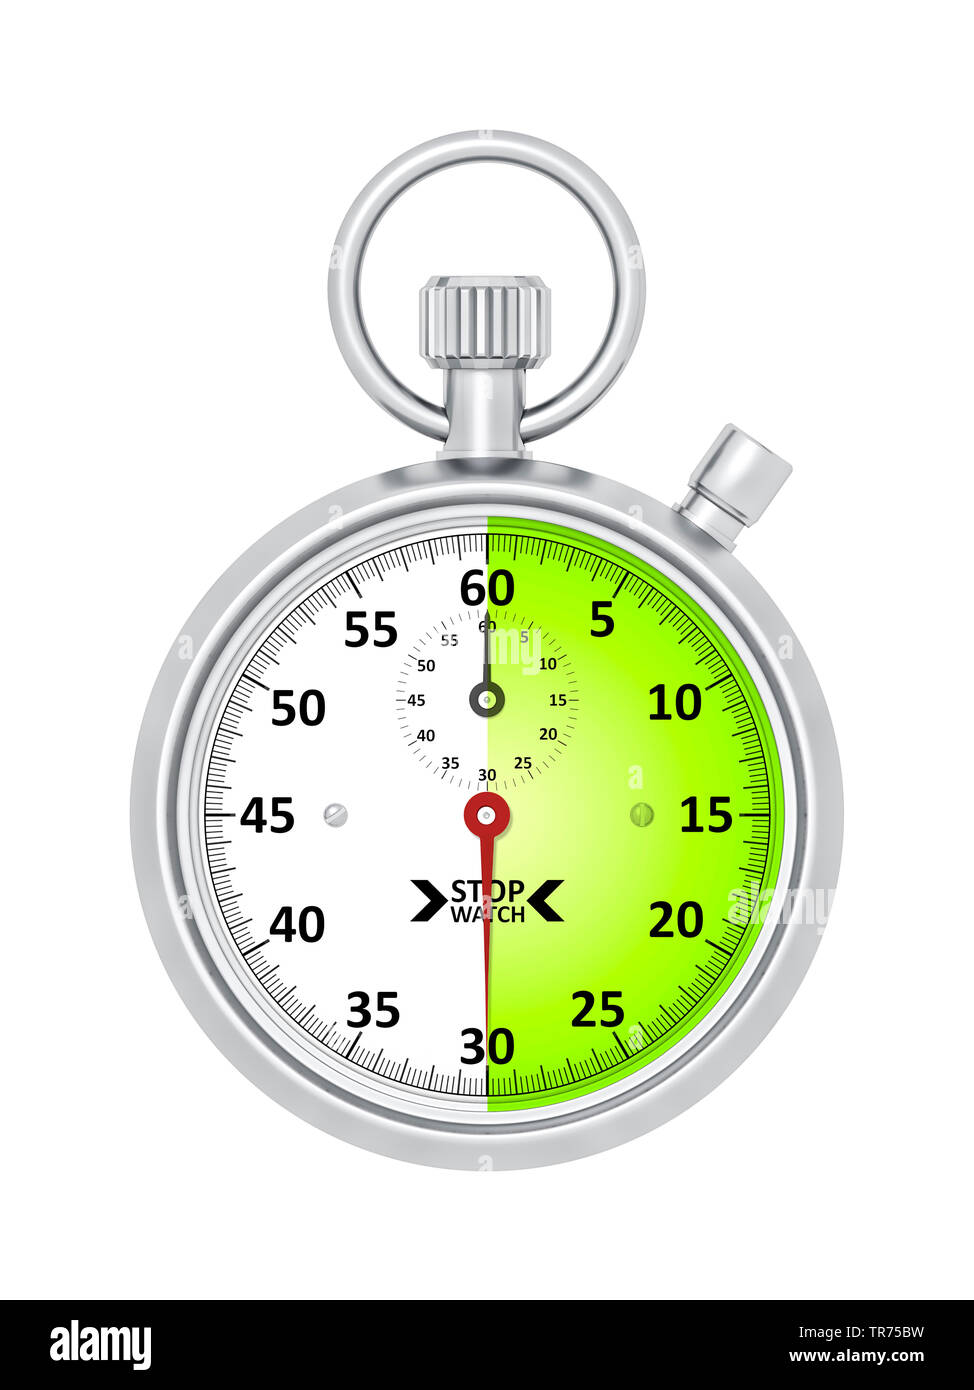 silver stopclock, cutout, 30 seconds - Stock Image